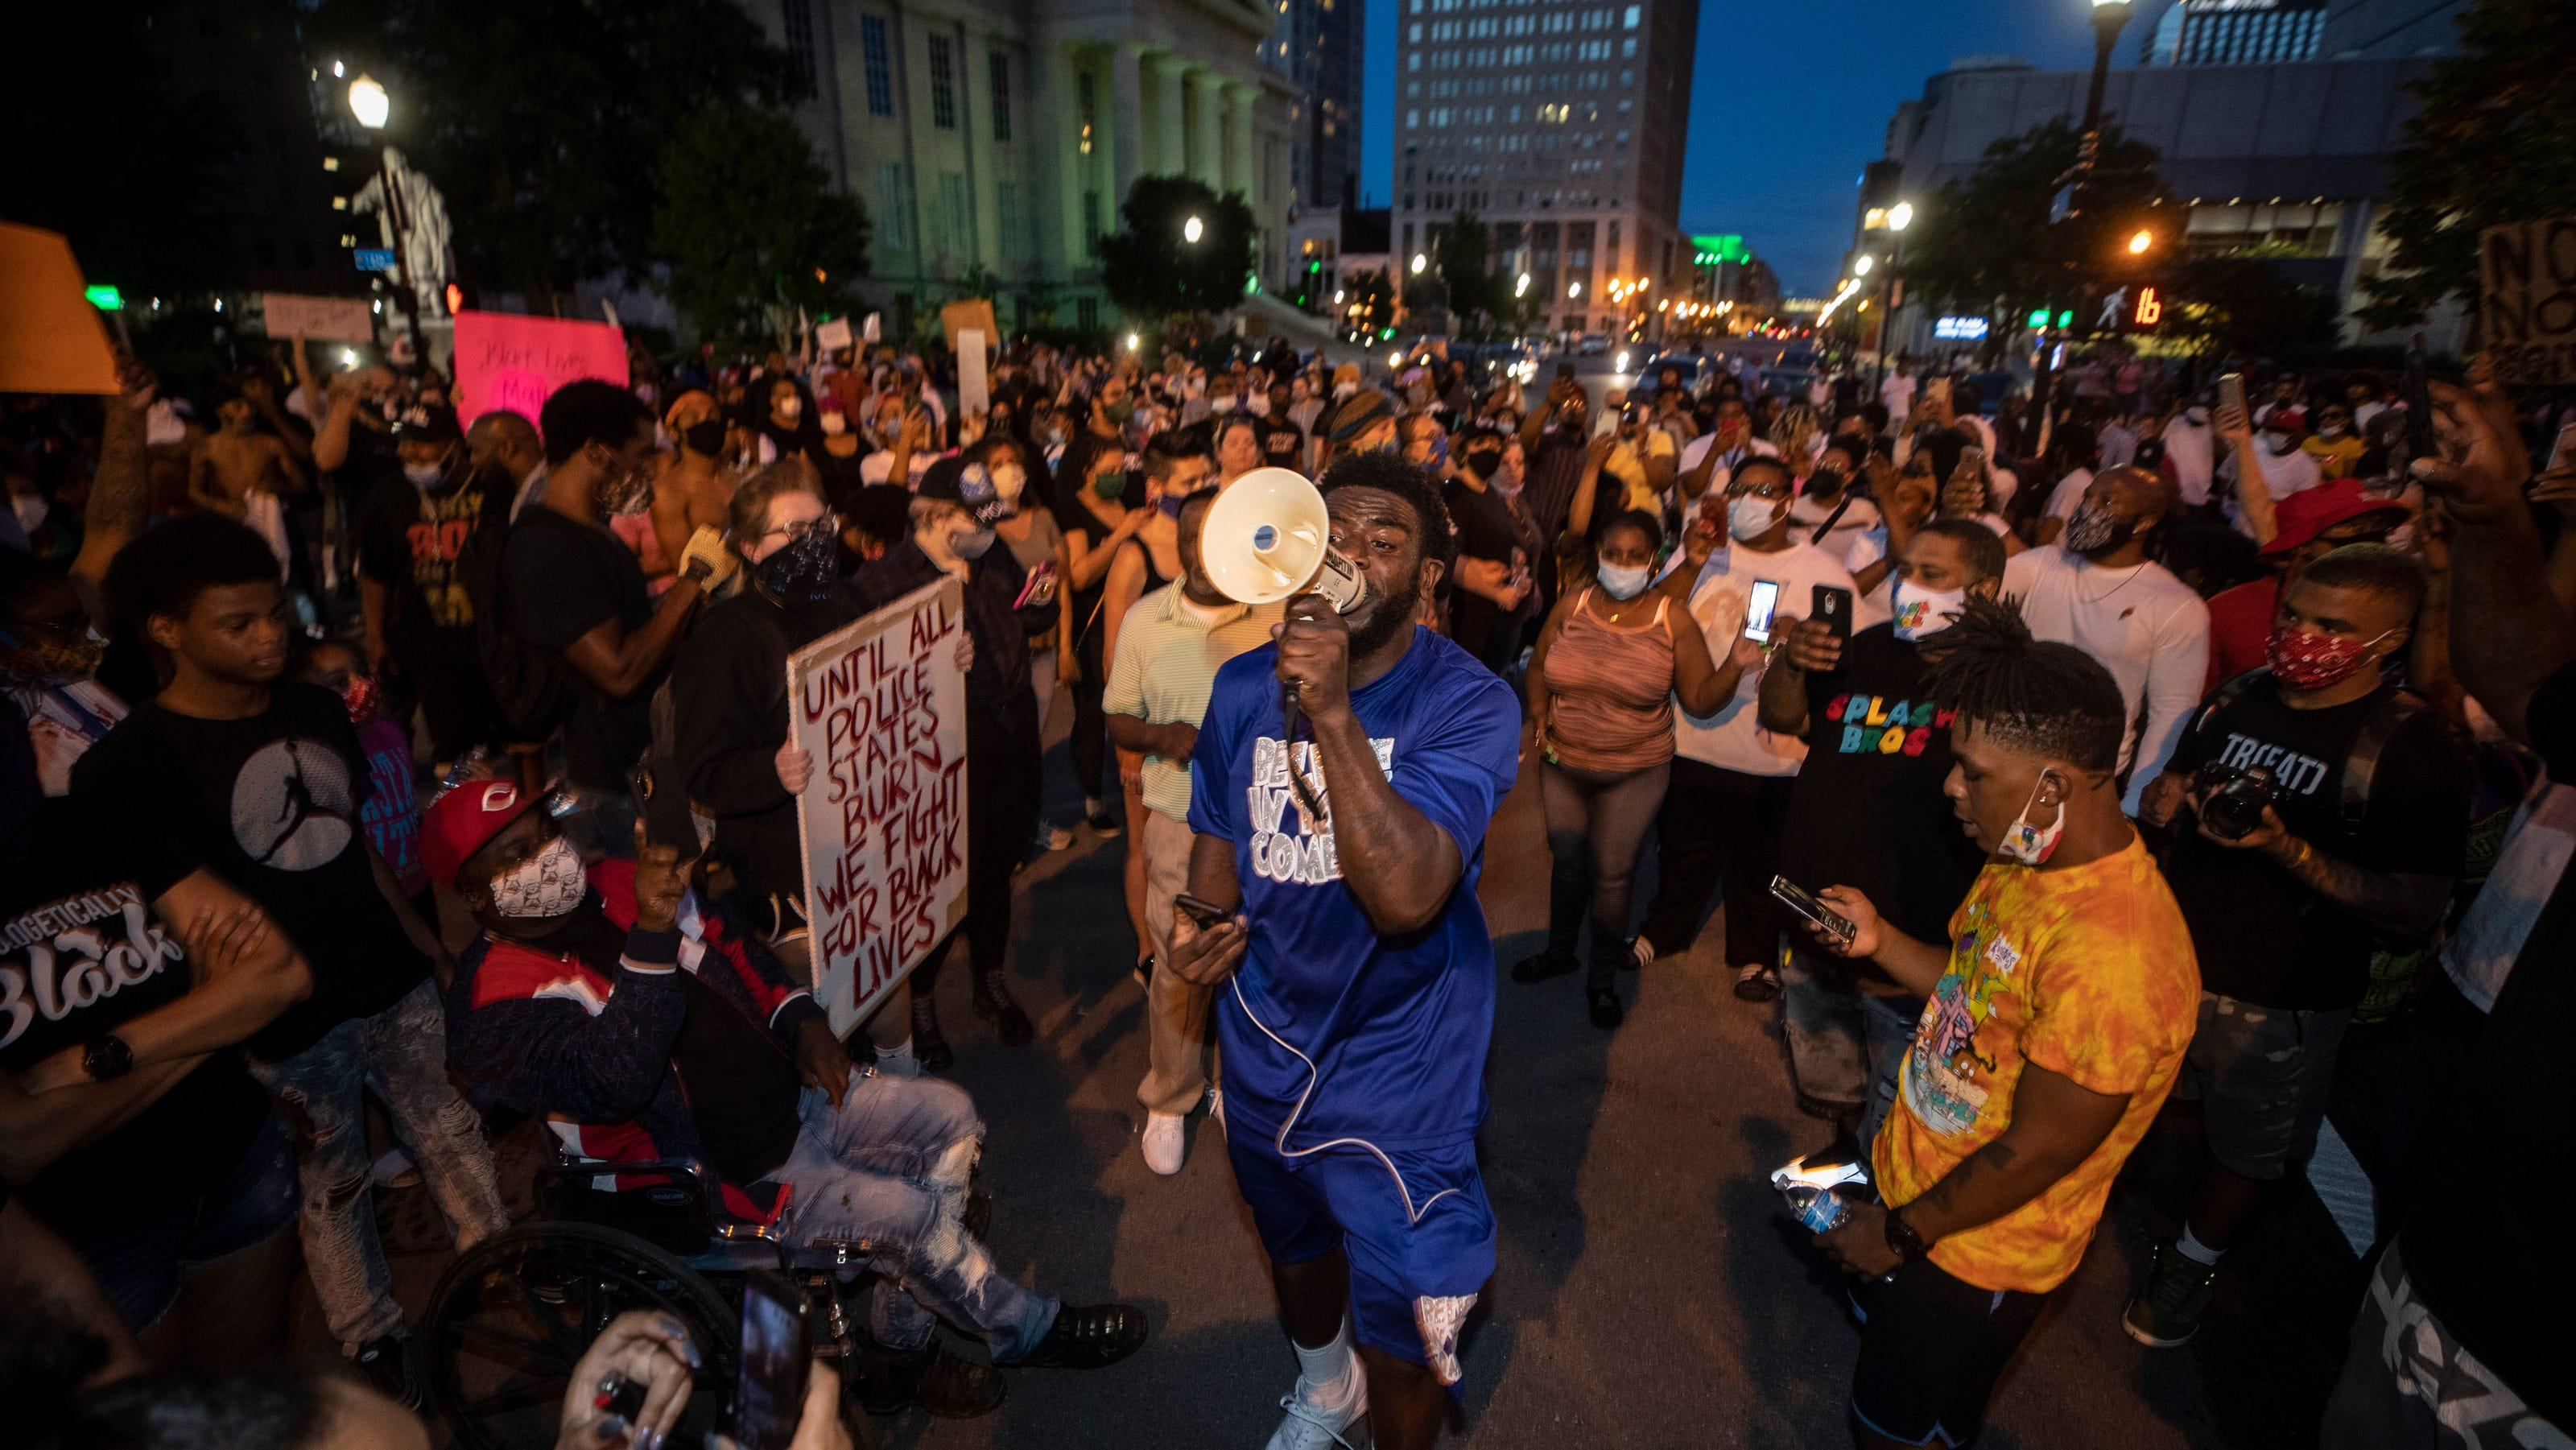 'No leads' on shooter who wounded 7 during Breonna Taylor protest in Louisville. Here's what we know